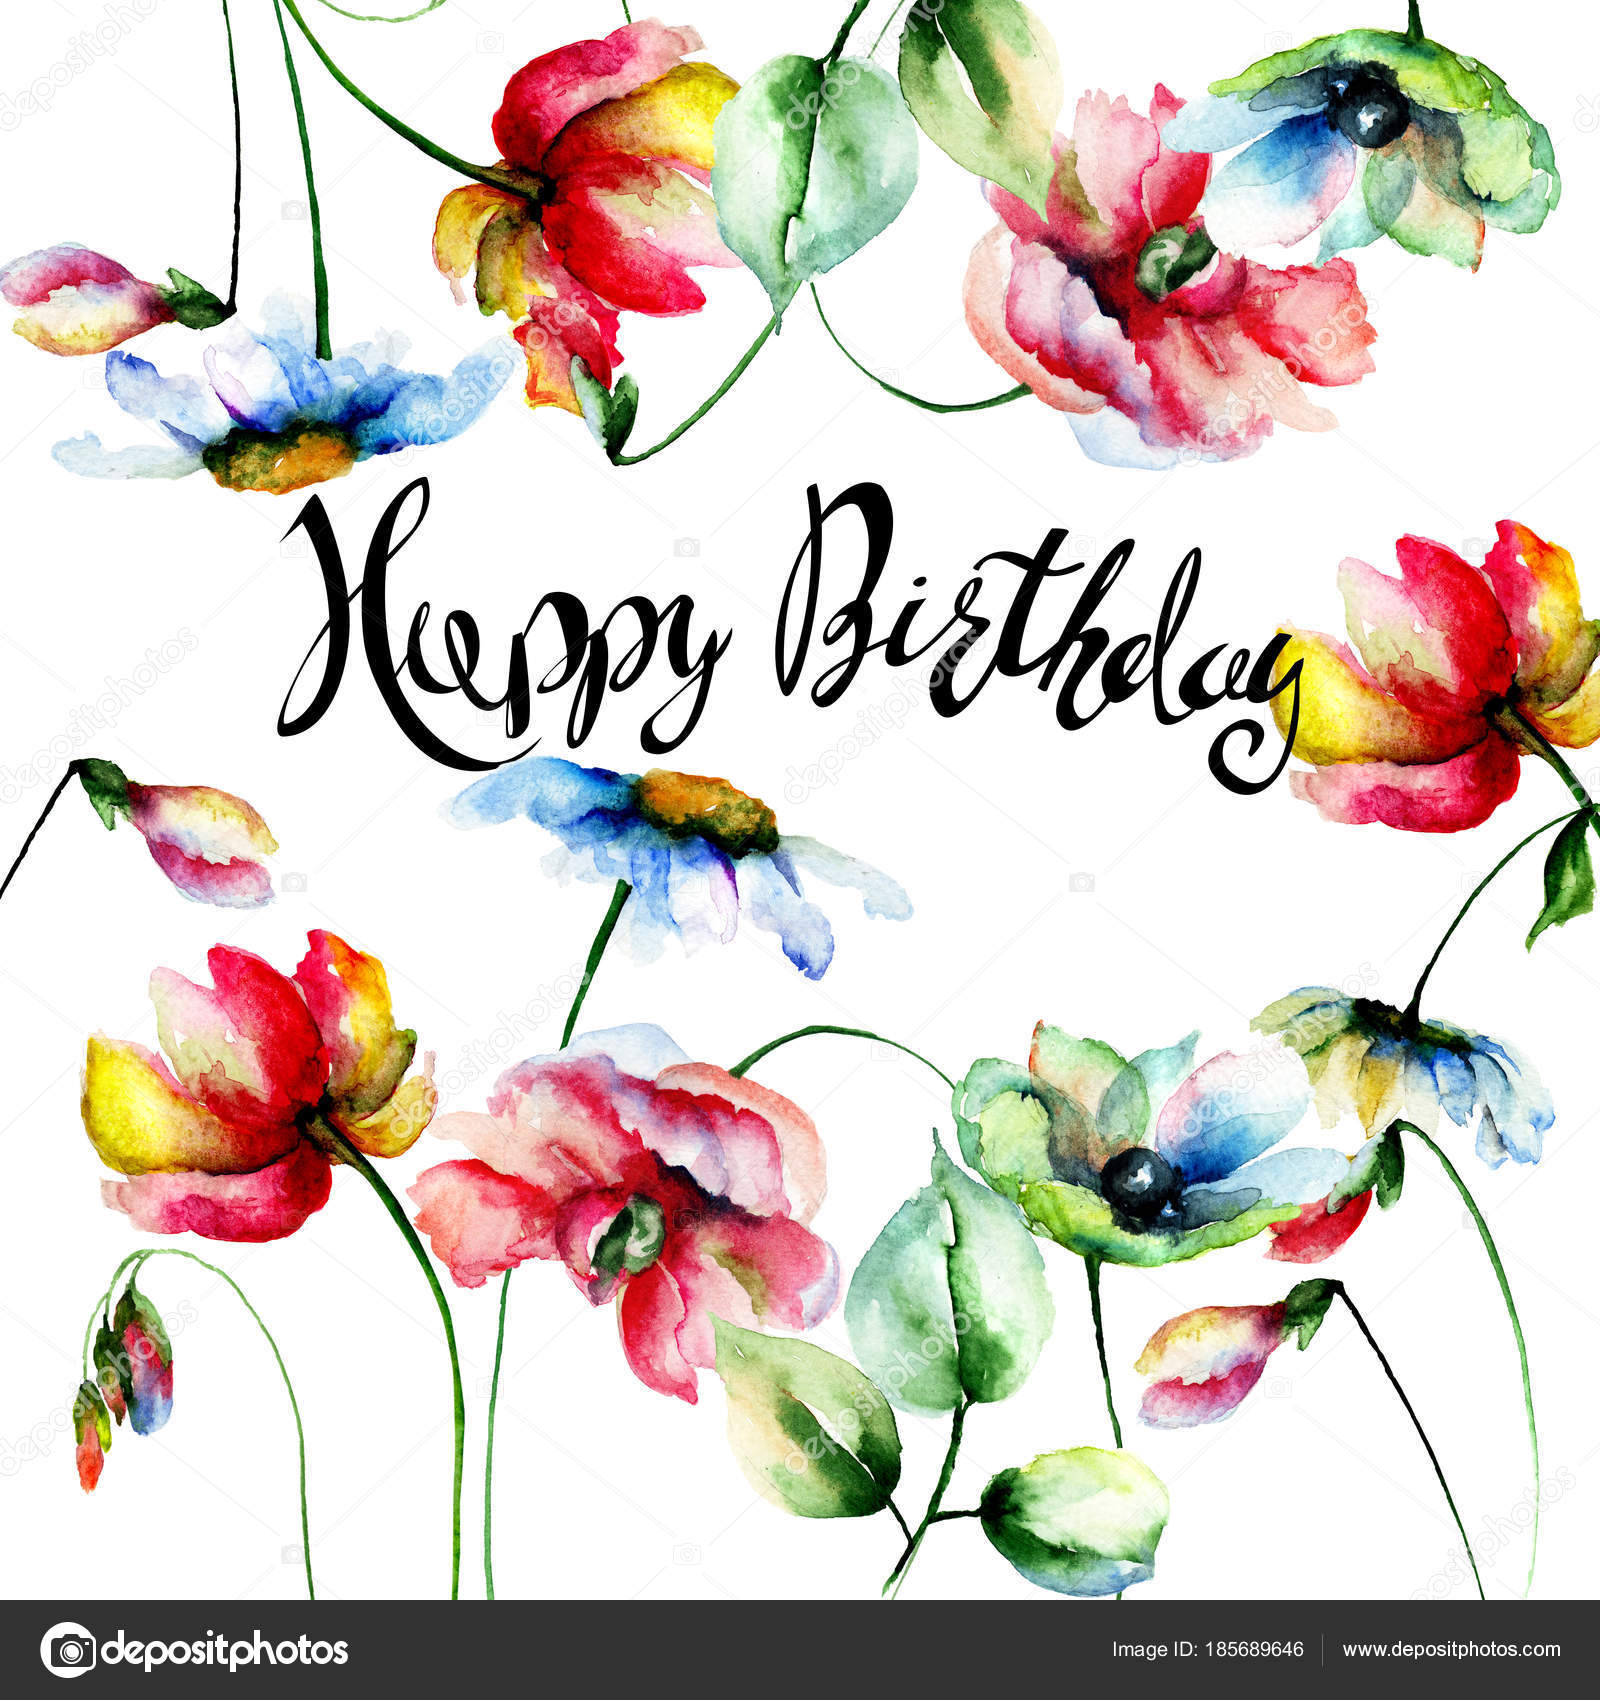 Decorative summer flowers with happy birthday stock photo decorative summer flowers with happy birthday stock photo izmirmasajfo